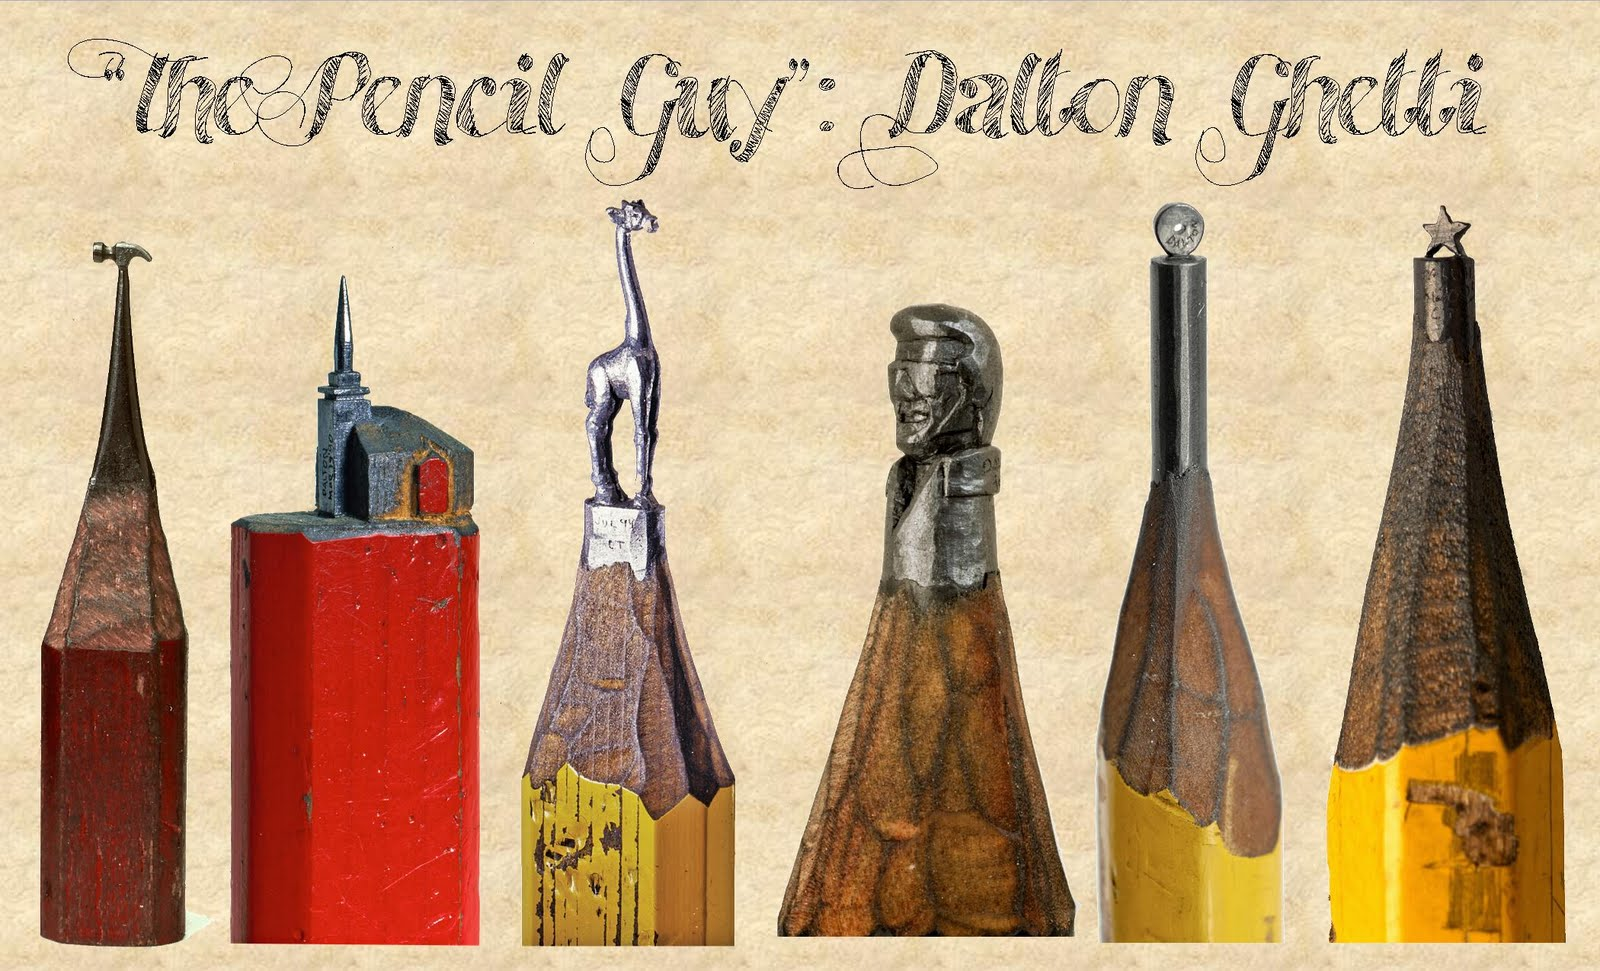 Dalton-Ghetti pencil art